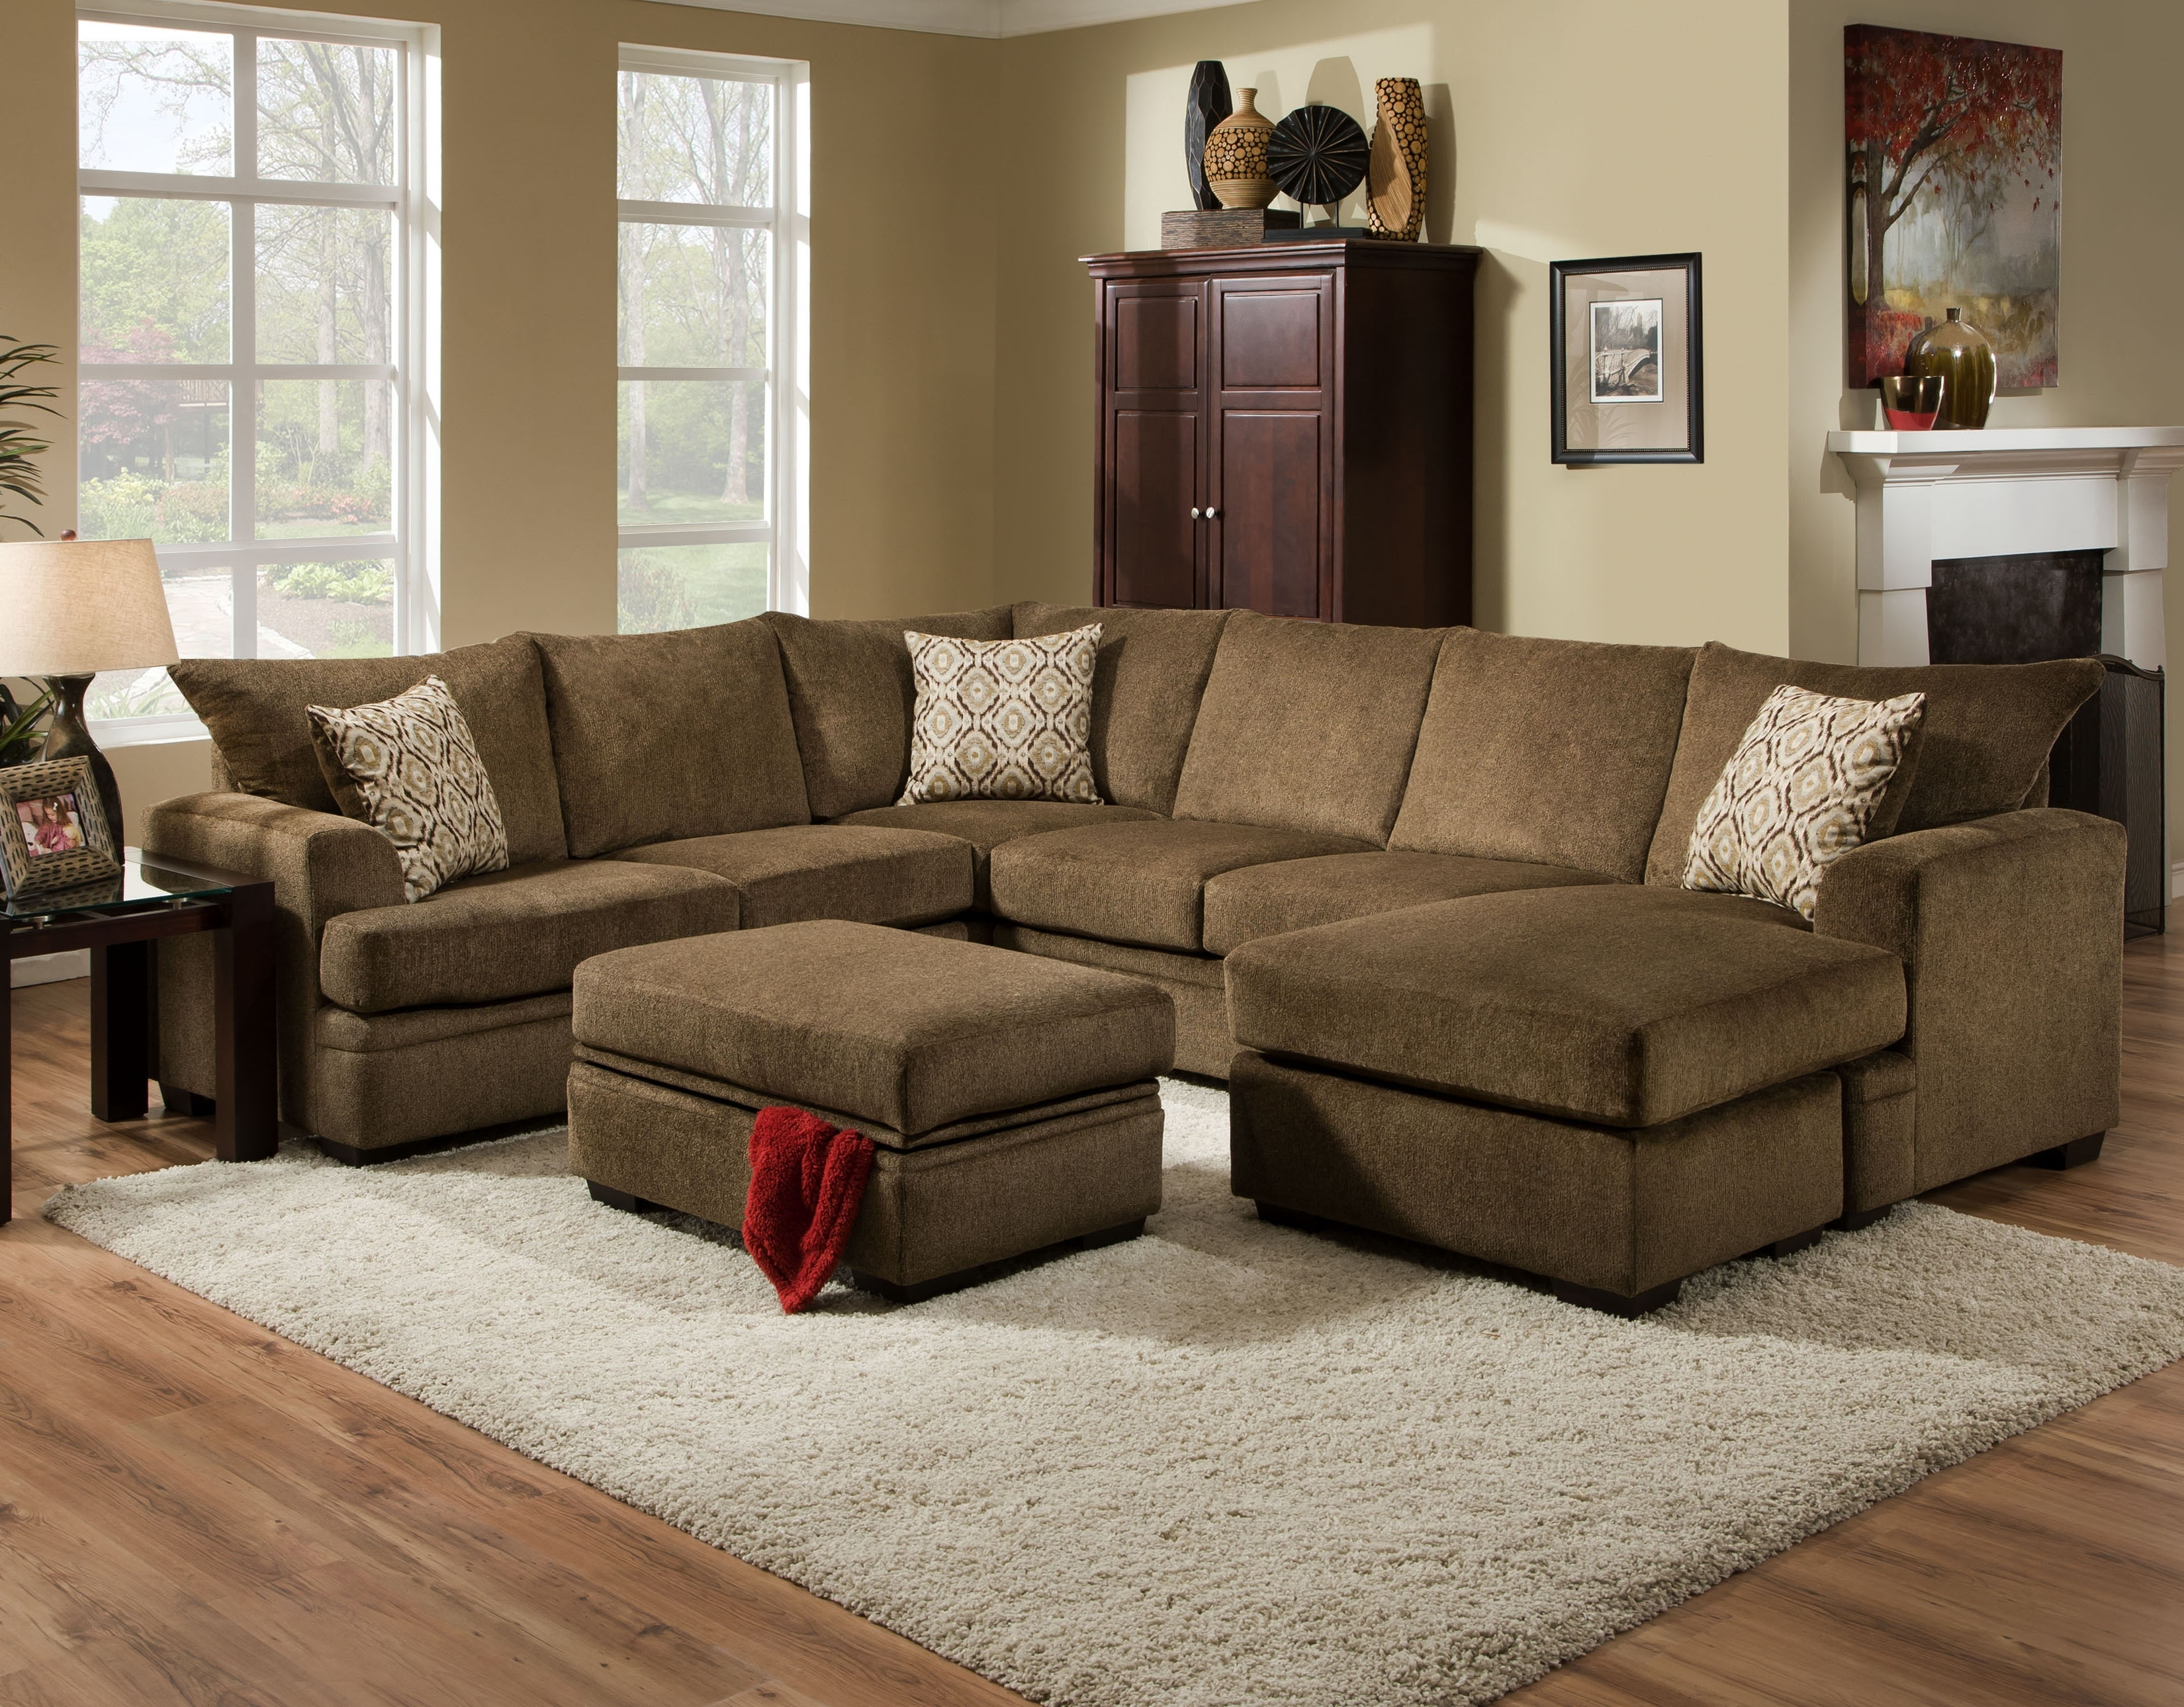 Living Room – Crazy Joe's Best Deal Furniture Inside Janesville Wi Sectional Sofas (View 4 of 10)